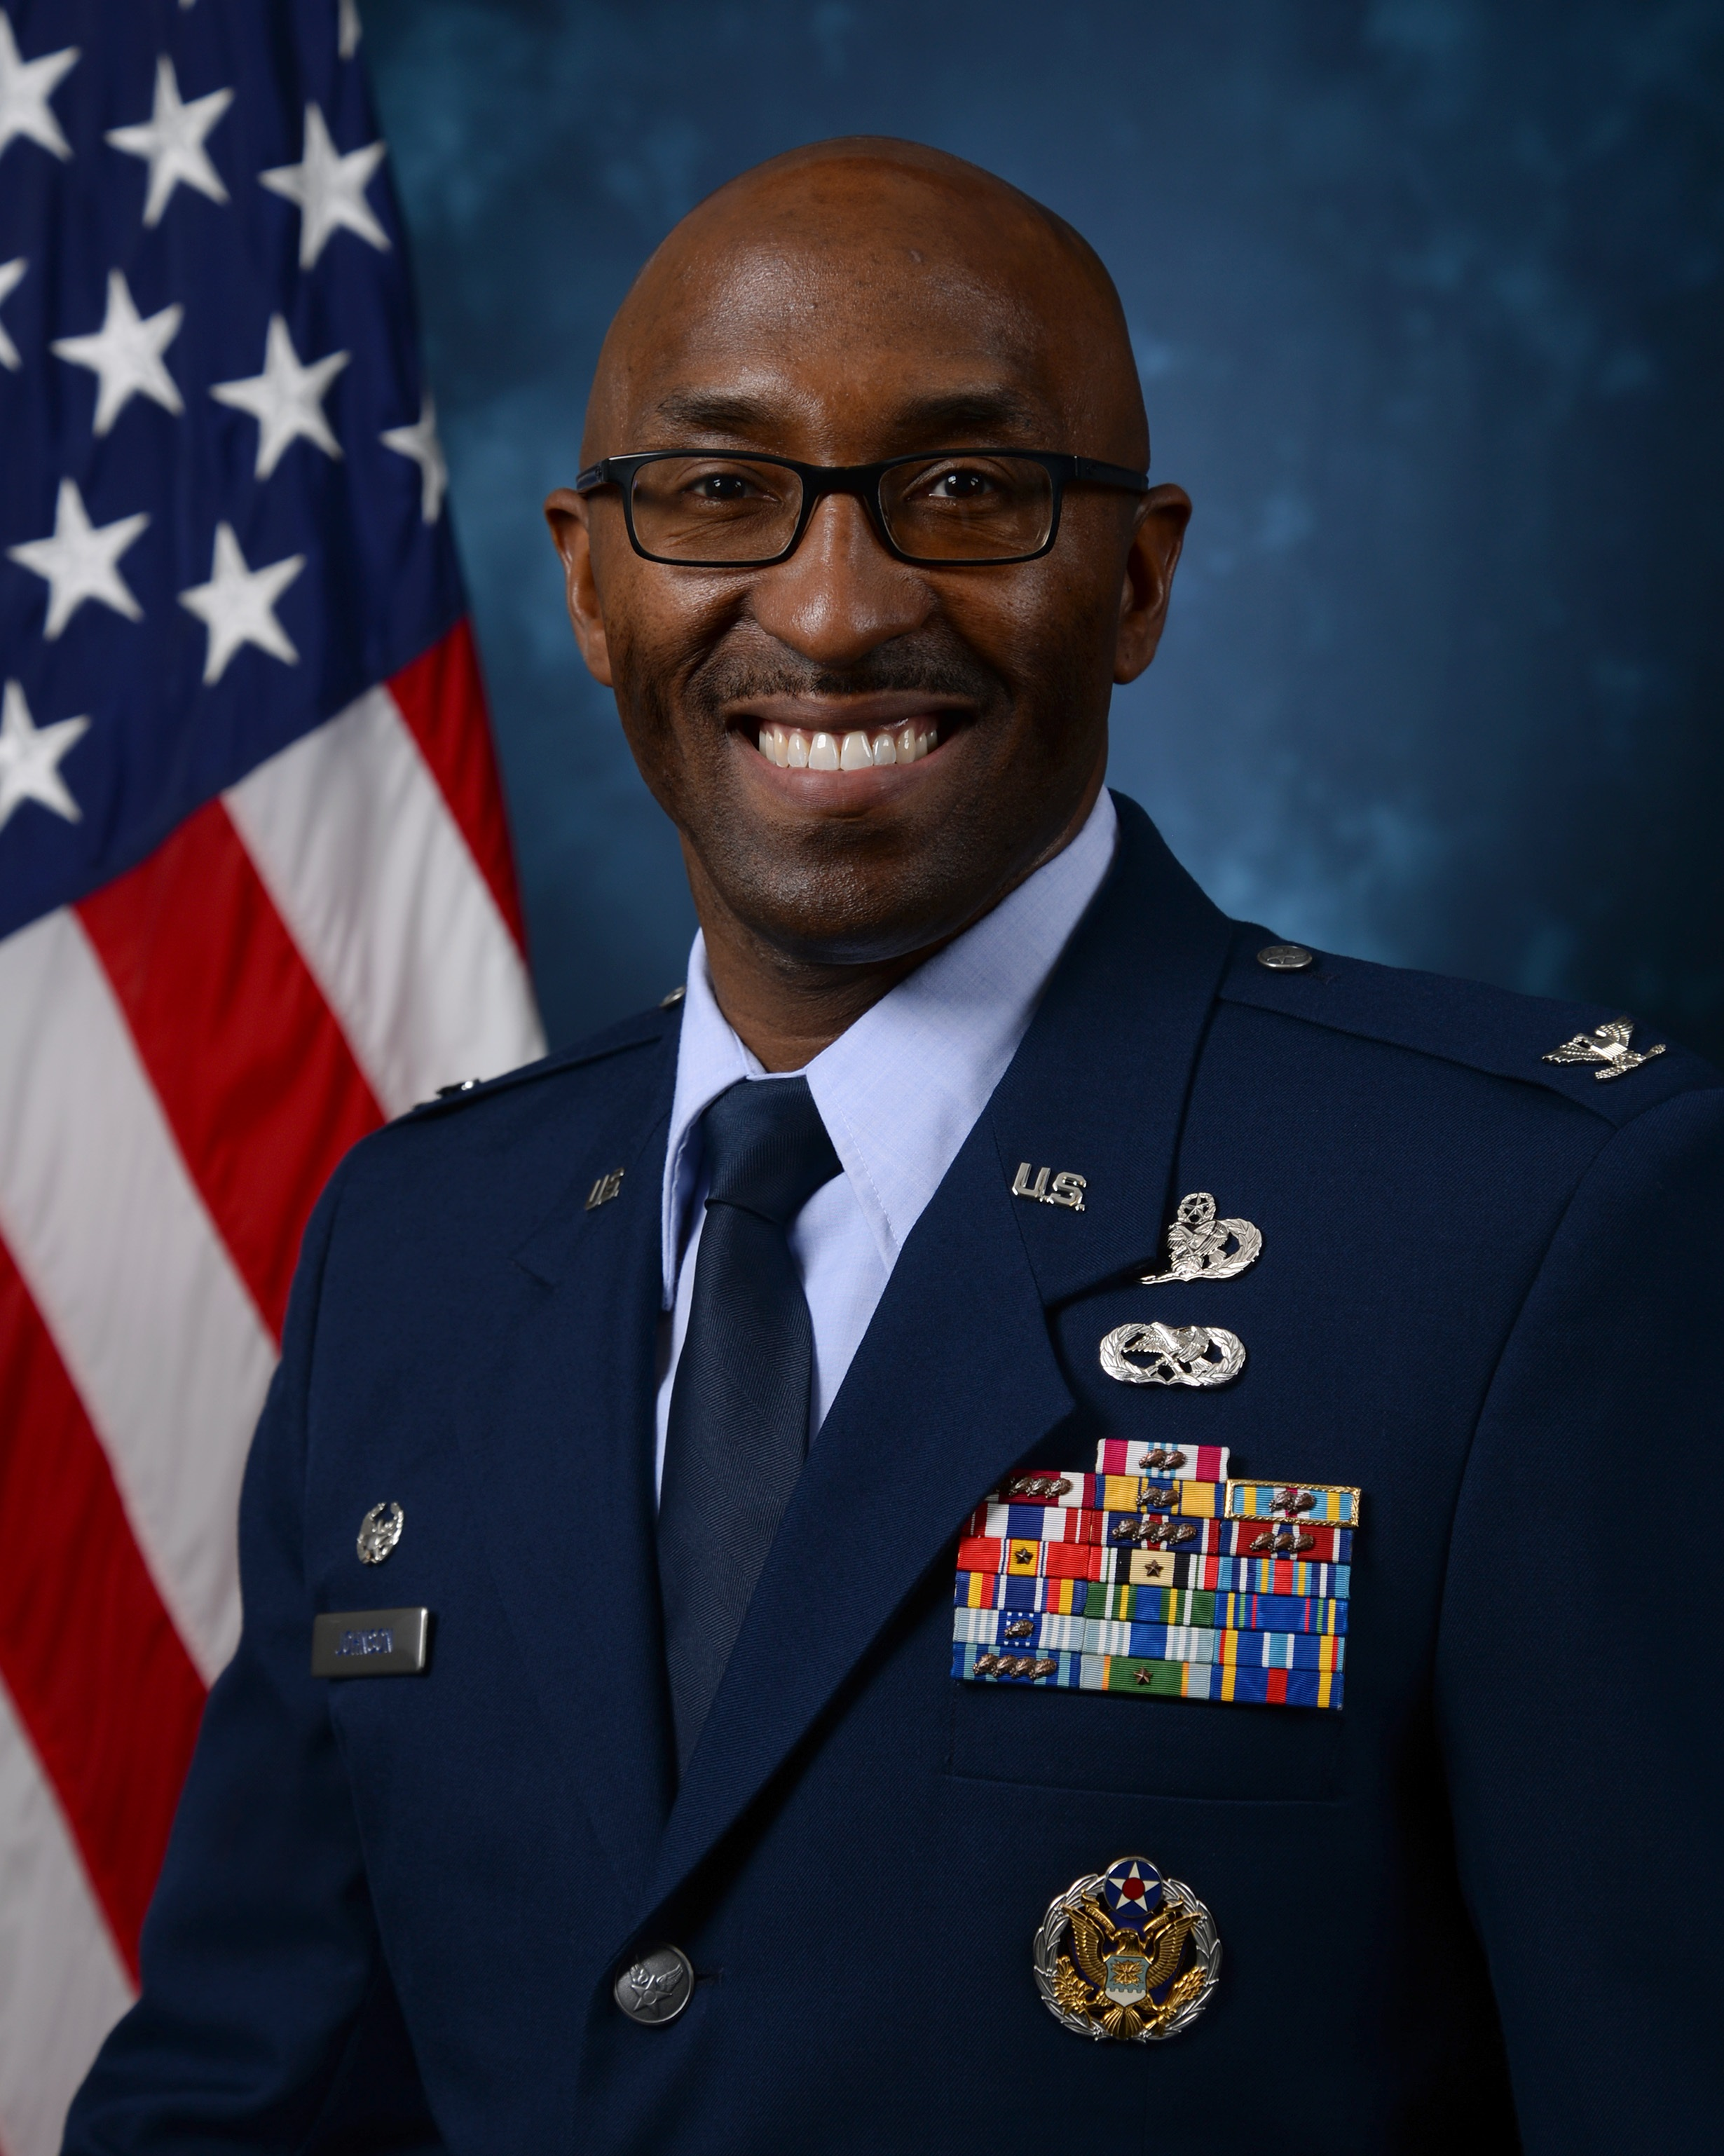 an official photograph of Col. Andre T. Johnson